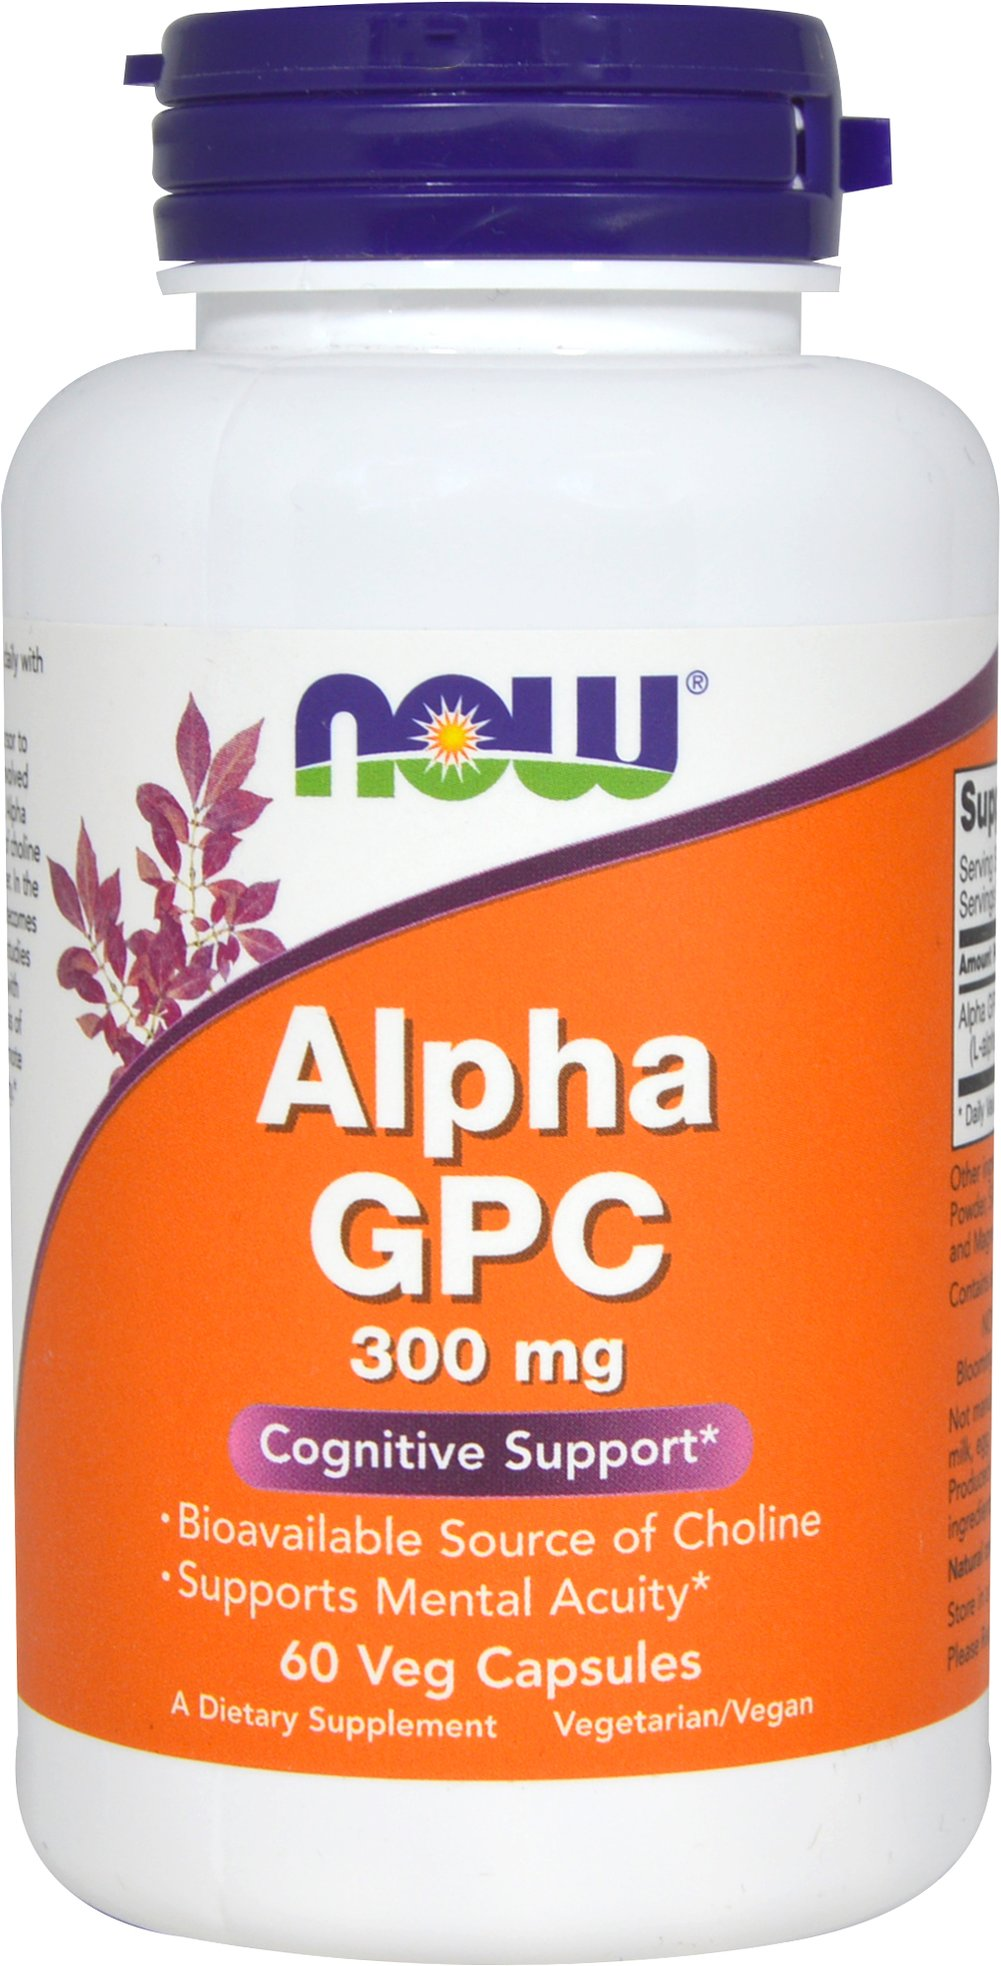 Alpha GPC 300 mg <p><strong>From the Manufacturer's Label</strong></p><p>Bioavailable source of Choline</p><p>Supports Brain Function**</p><p>Alpha GPC is a natural physiological precursor to acetyl-choline, a neurotransmitter that is involved in memory and other cognitive functions. **  Alpha GPC is more bioavailable than other forms of choline.  In the brain and other neural tissues, Alph GPC becomes a constituent of cell membranes.  Su